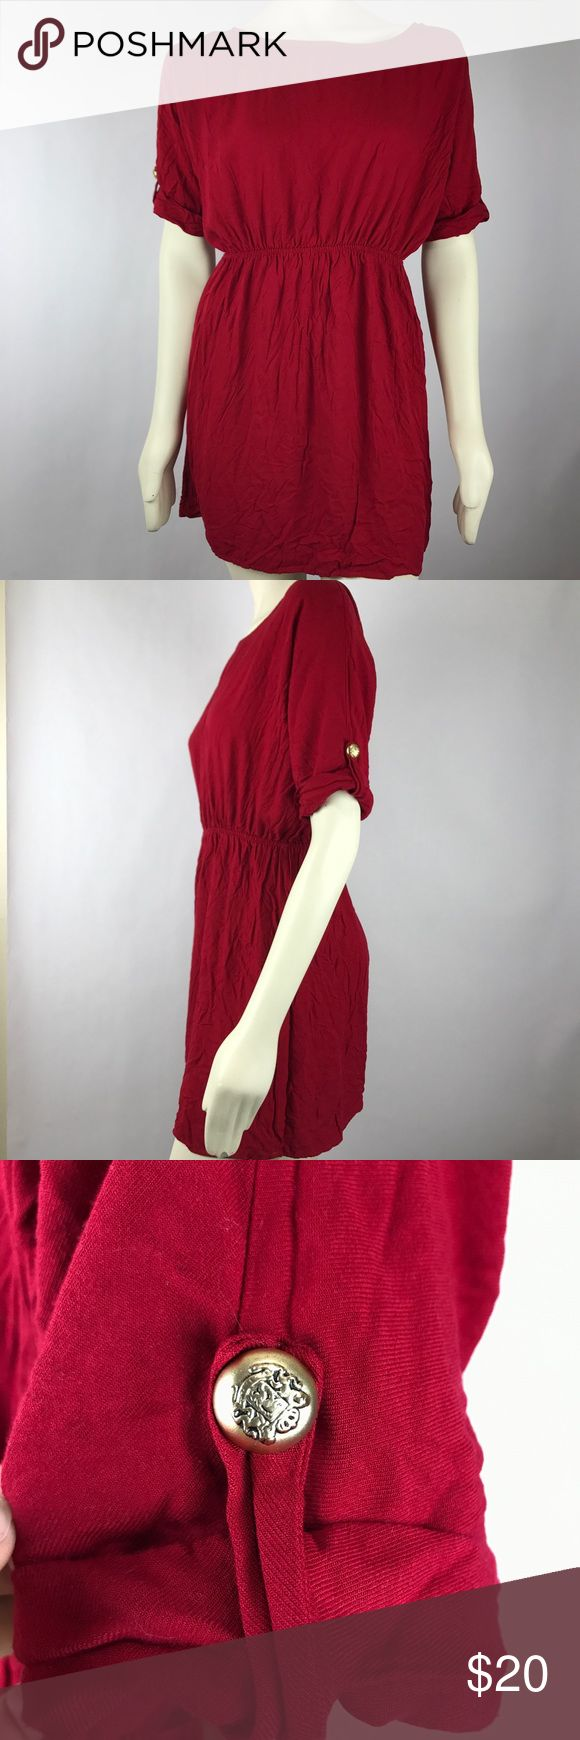 Modcloth Everly Red Blouson Empire Waist Dress Please see last photo for measurements Modcloth Dresses